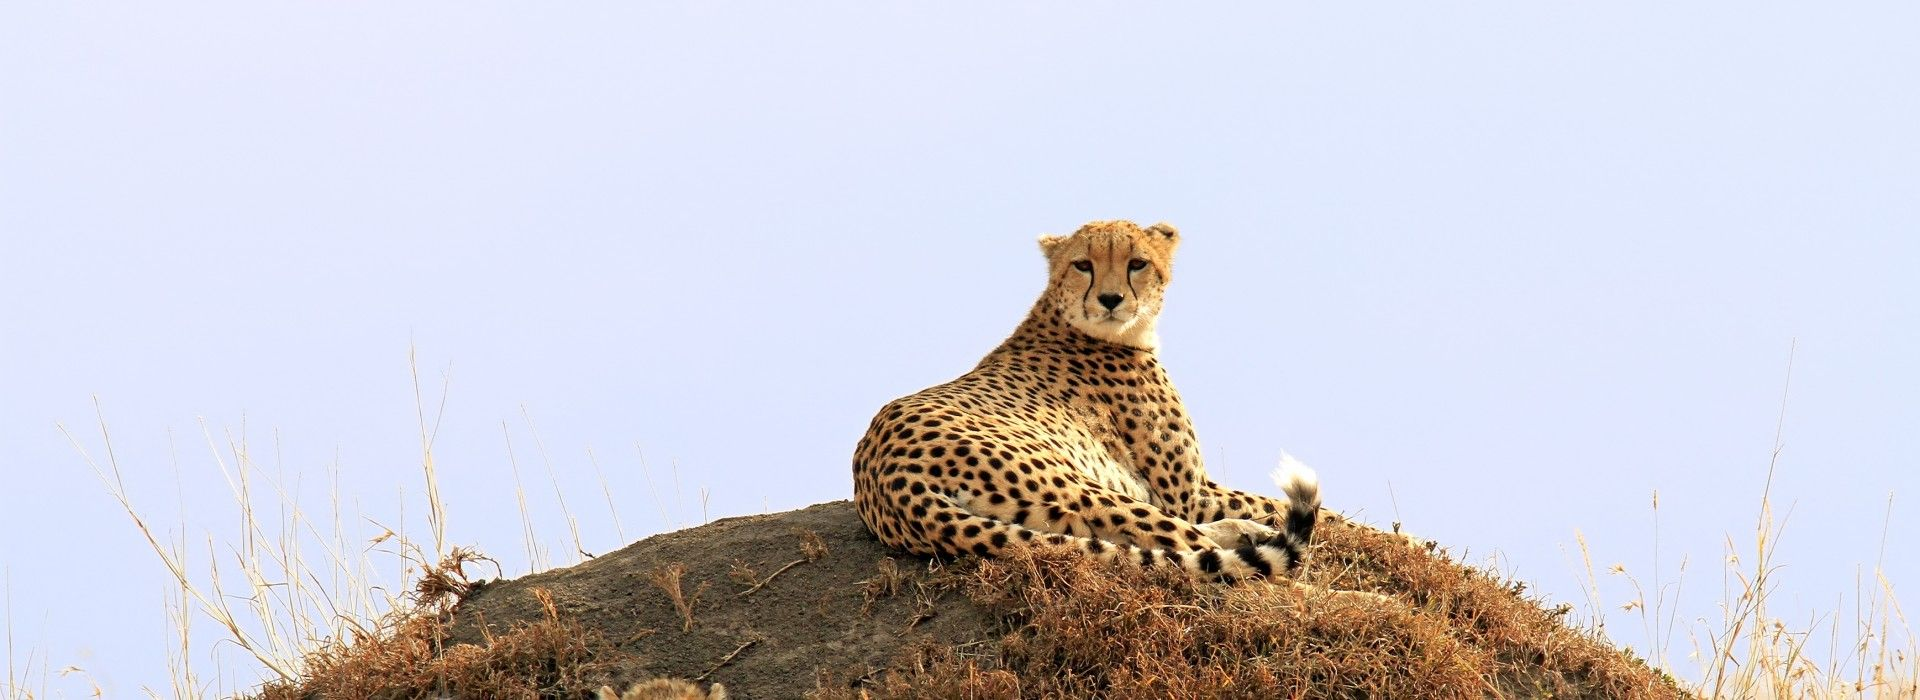 Wildlife, landscapes and nature Tours in Africa